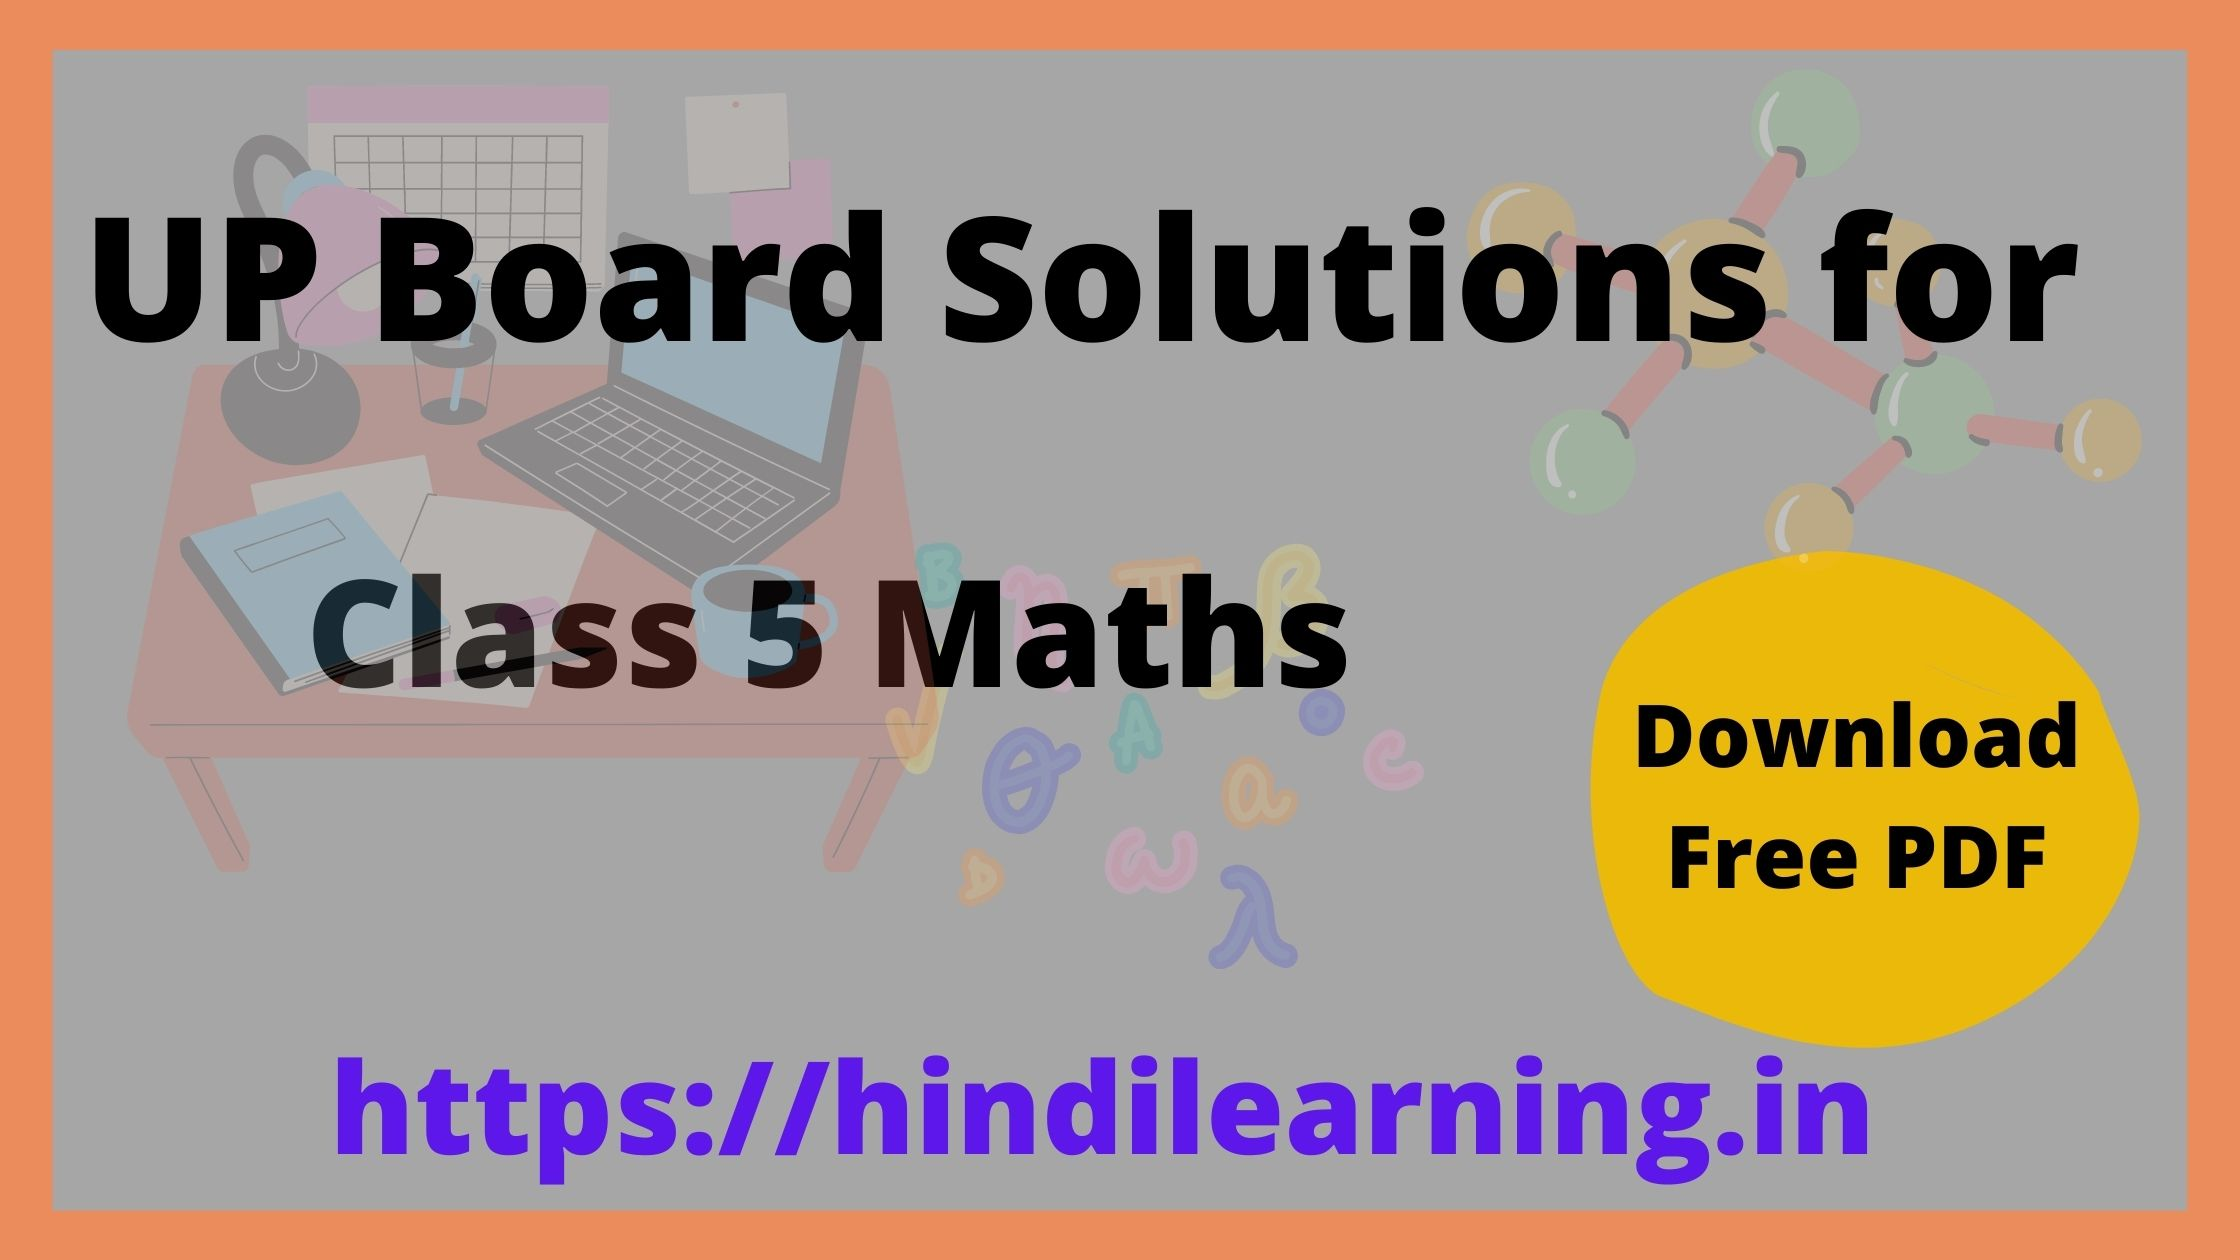 UP Board Solutions for Class 5 Maths ( गणित गिनतारा )